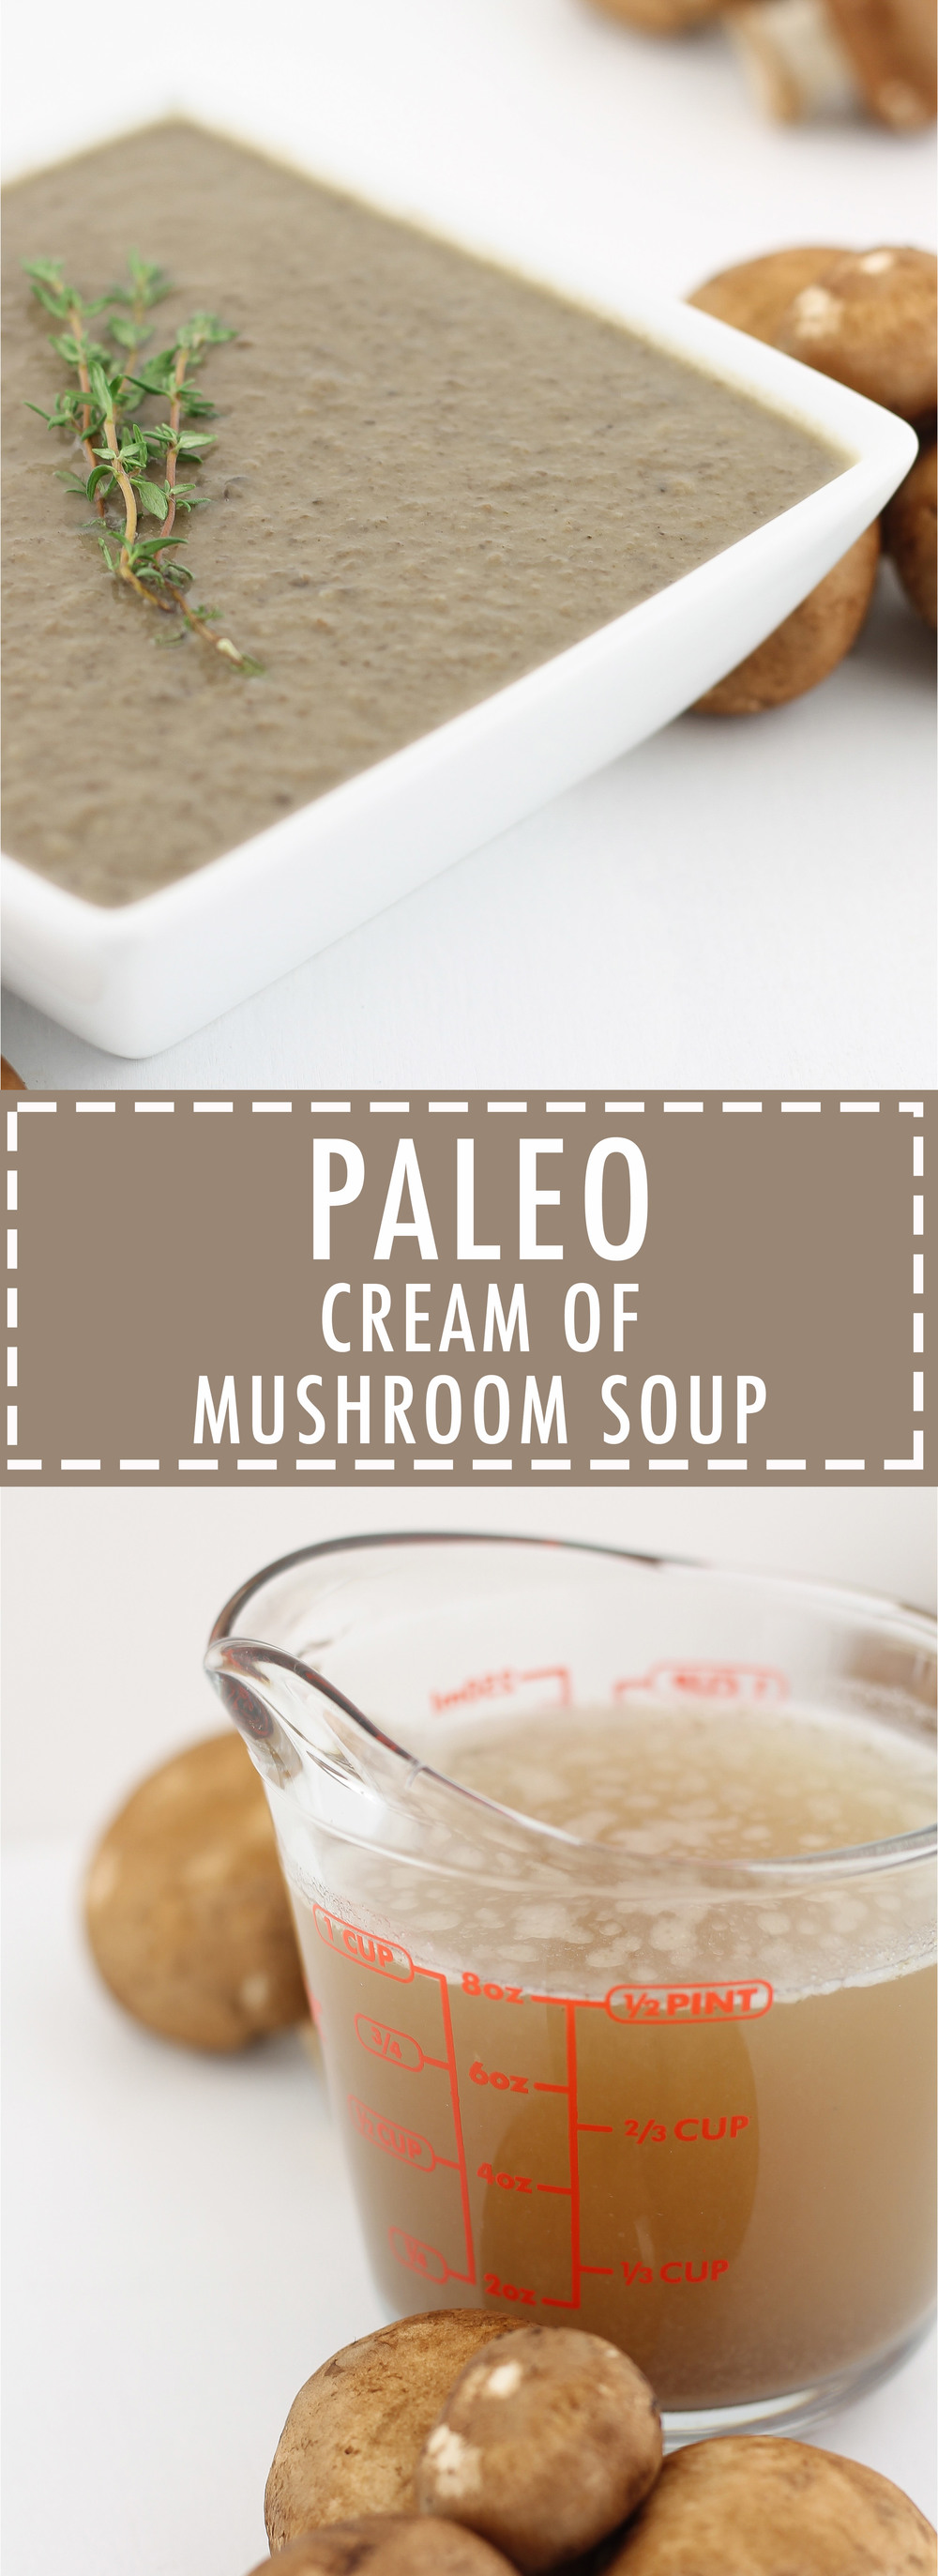 Paleo Cream Of Mushroom Soup, Healthy, Paleo Recipes, Gluten Free, Dairy Free, Grain Free, Primal, Whole30